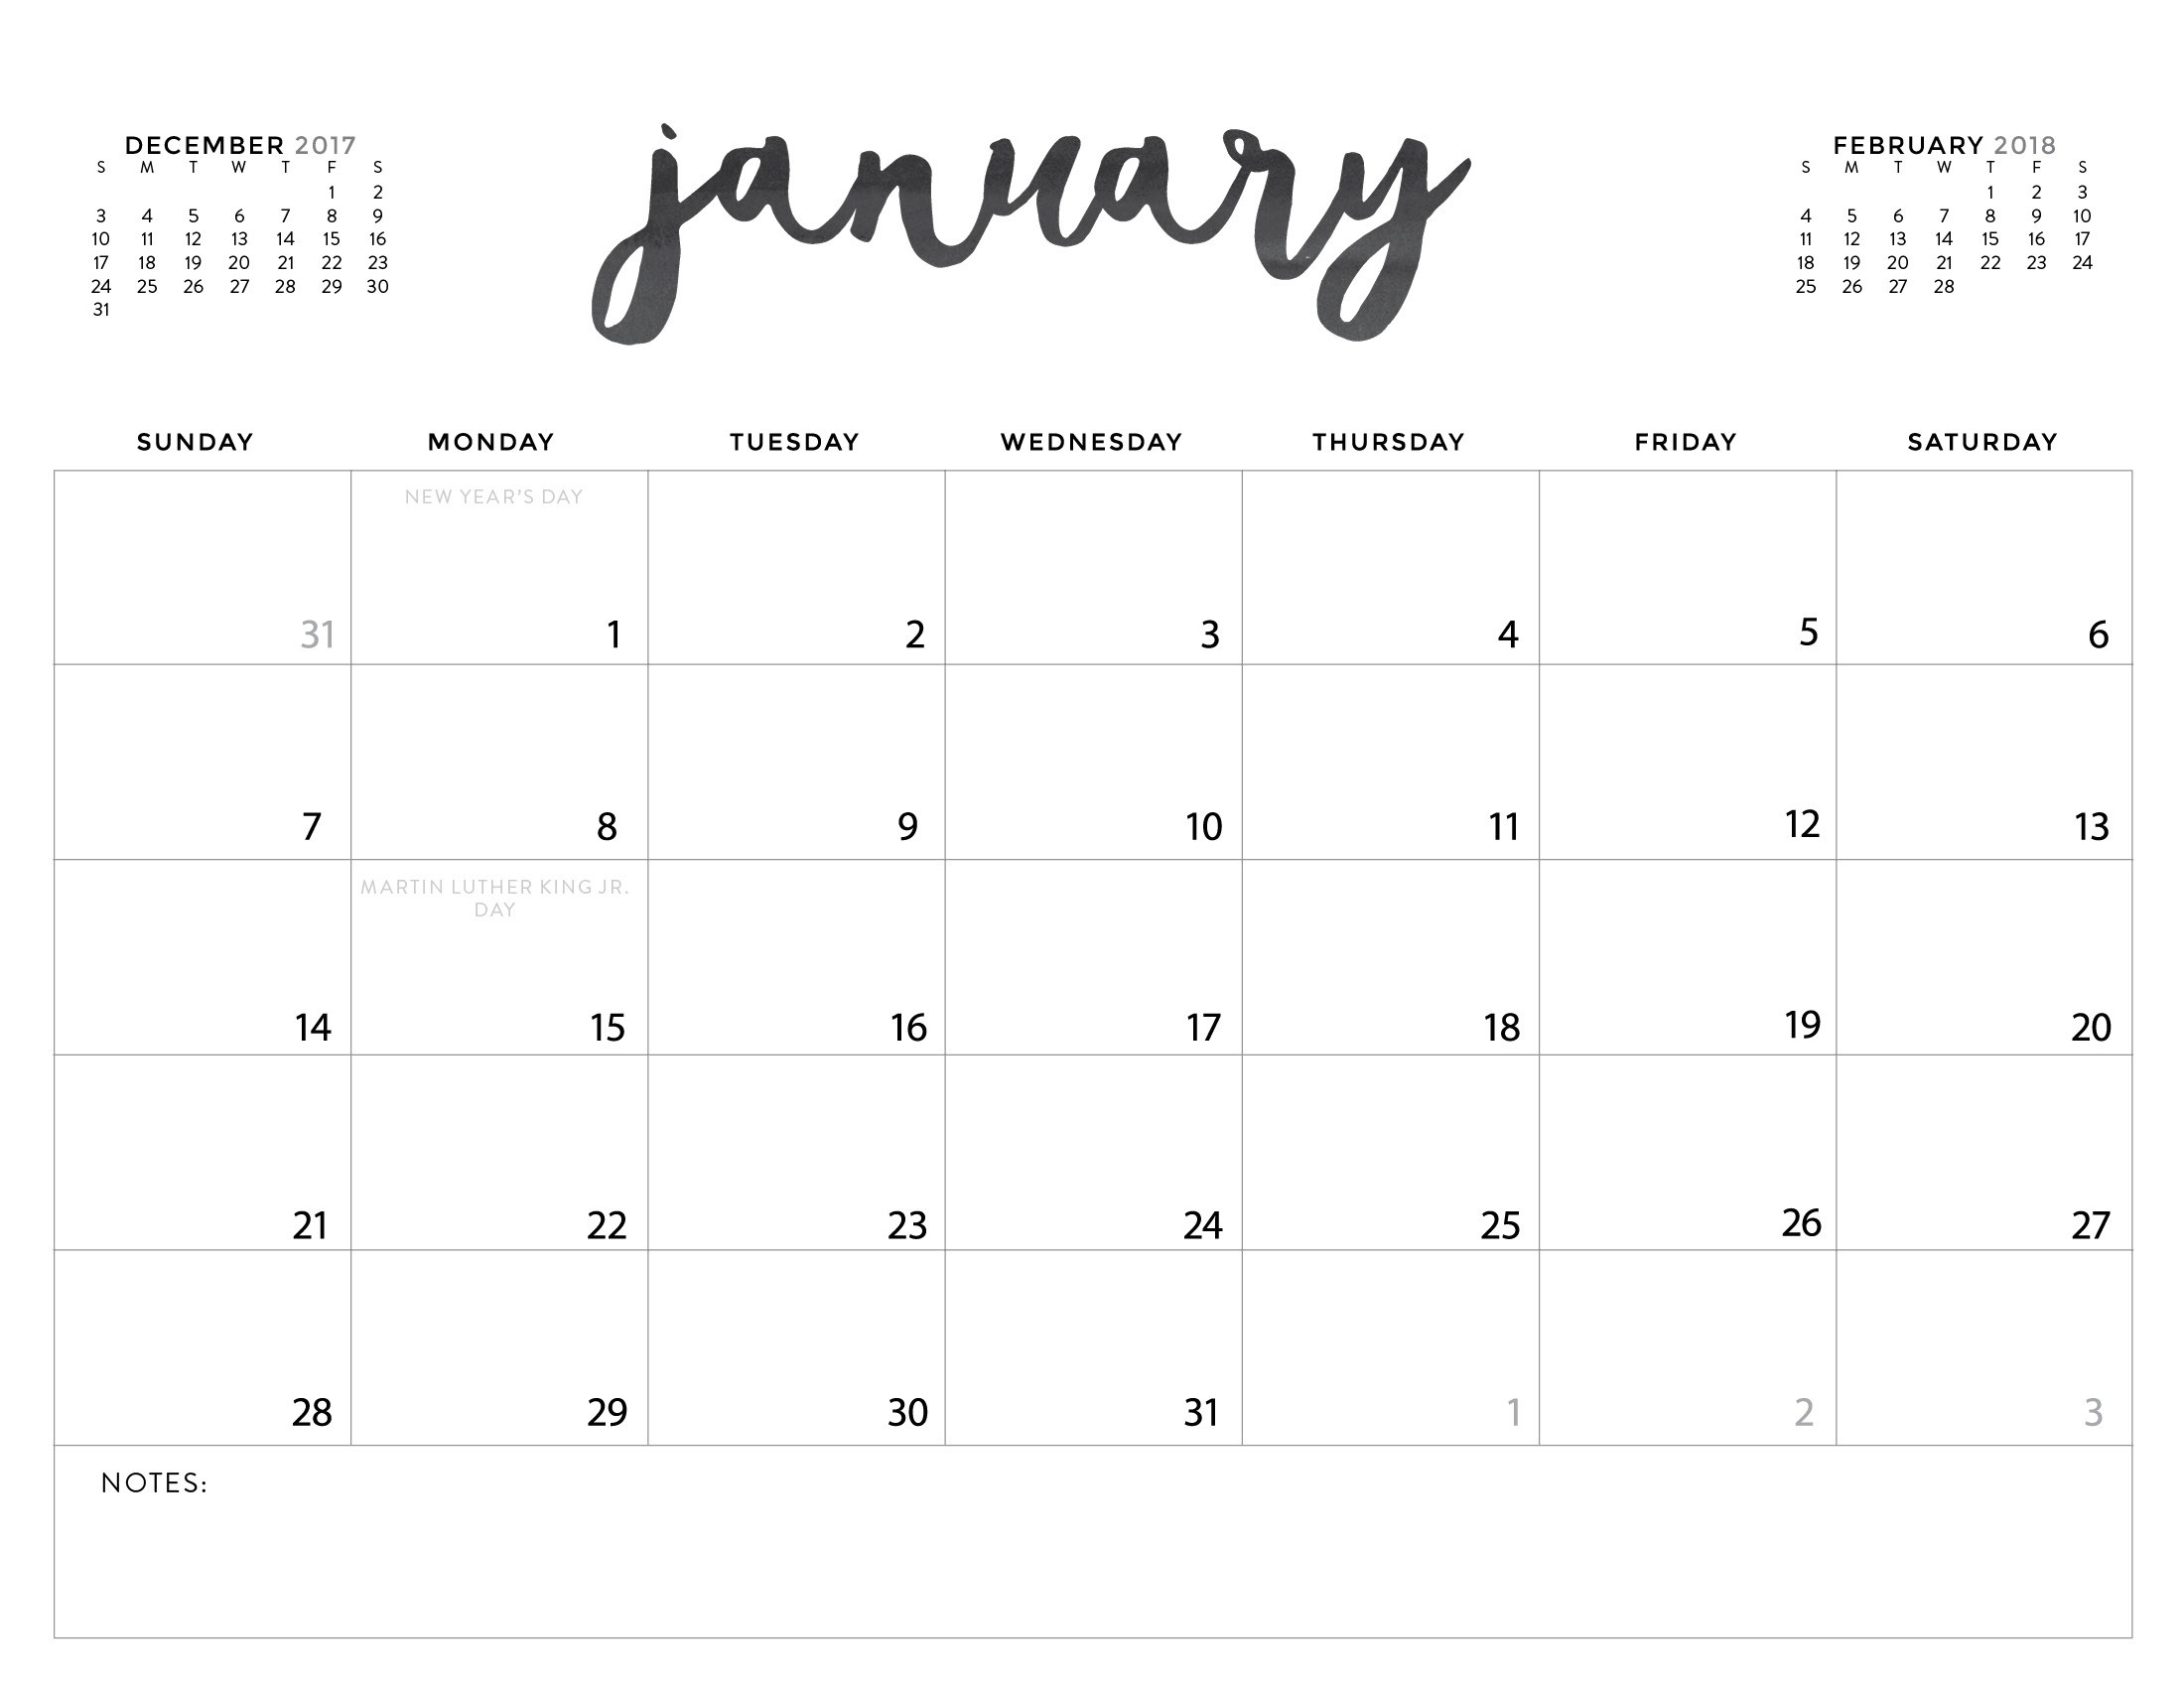 Download Your Free 2018 Printable Calendars Today! There Are 28 - Free Printable Planner 2017 2018